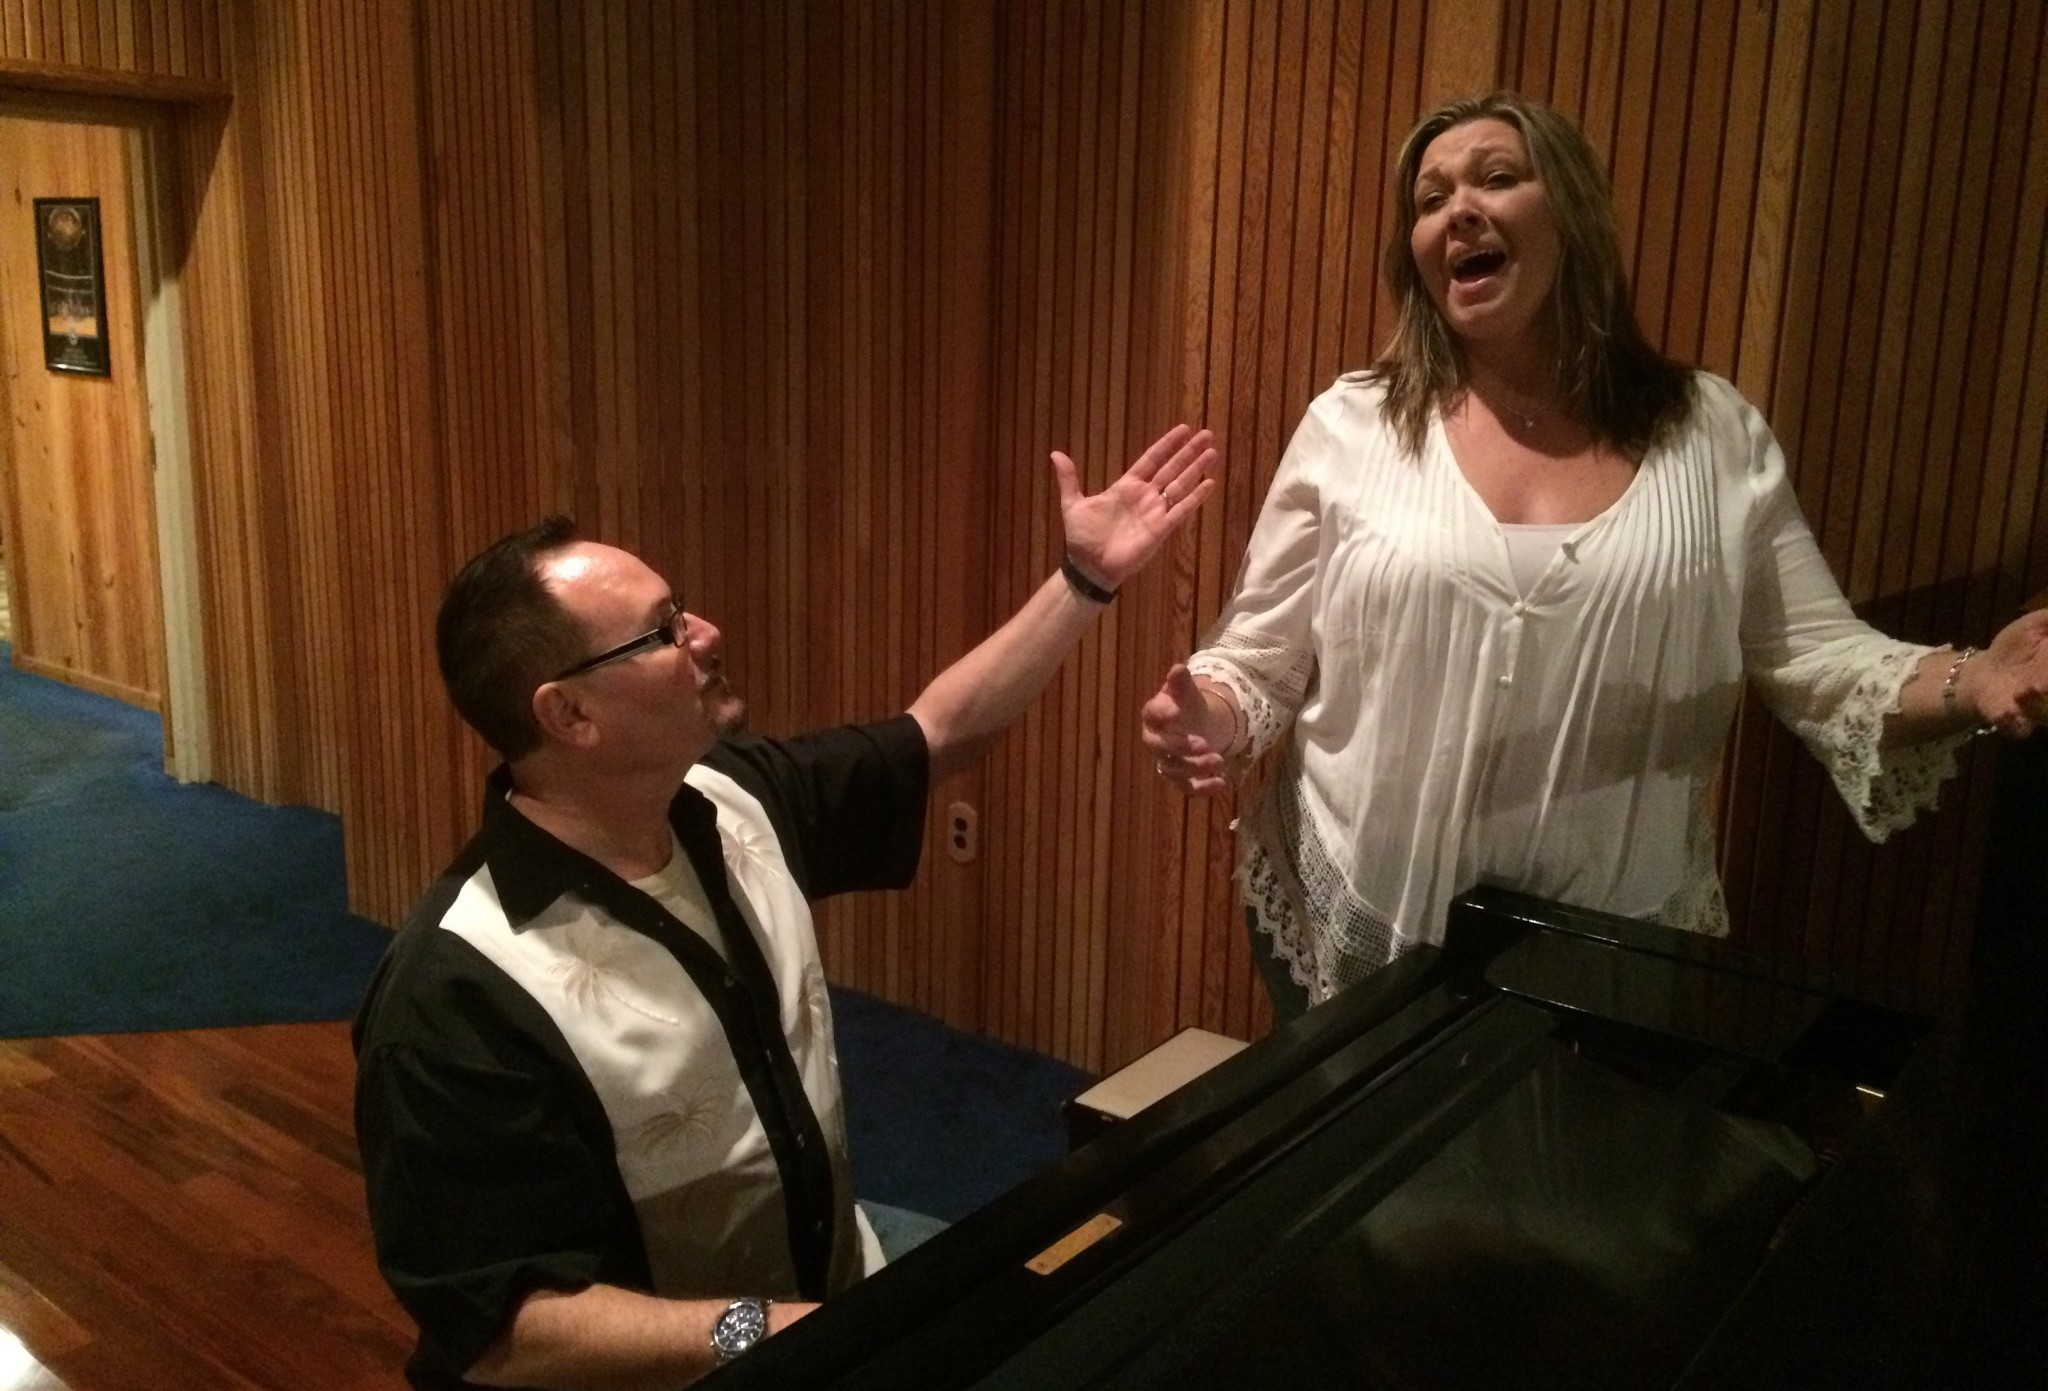 Orlando Vocal Coach John Cavazos Teaching Local Singer